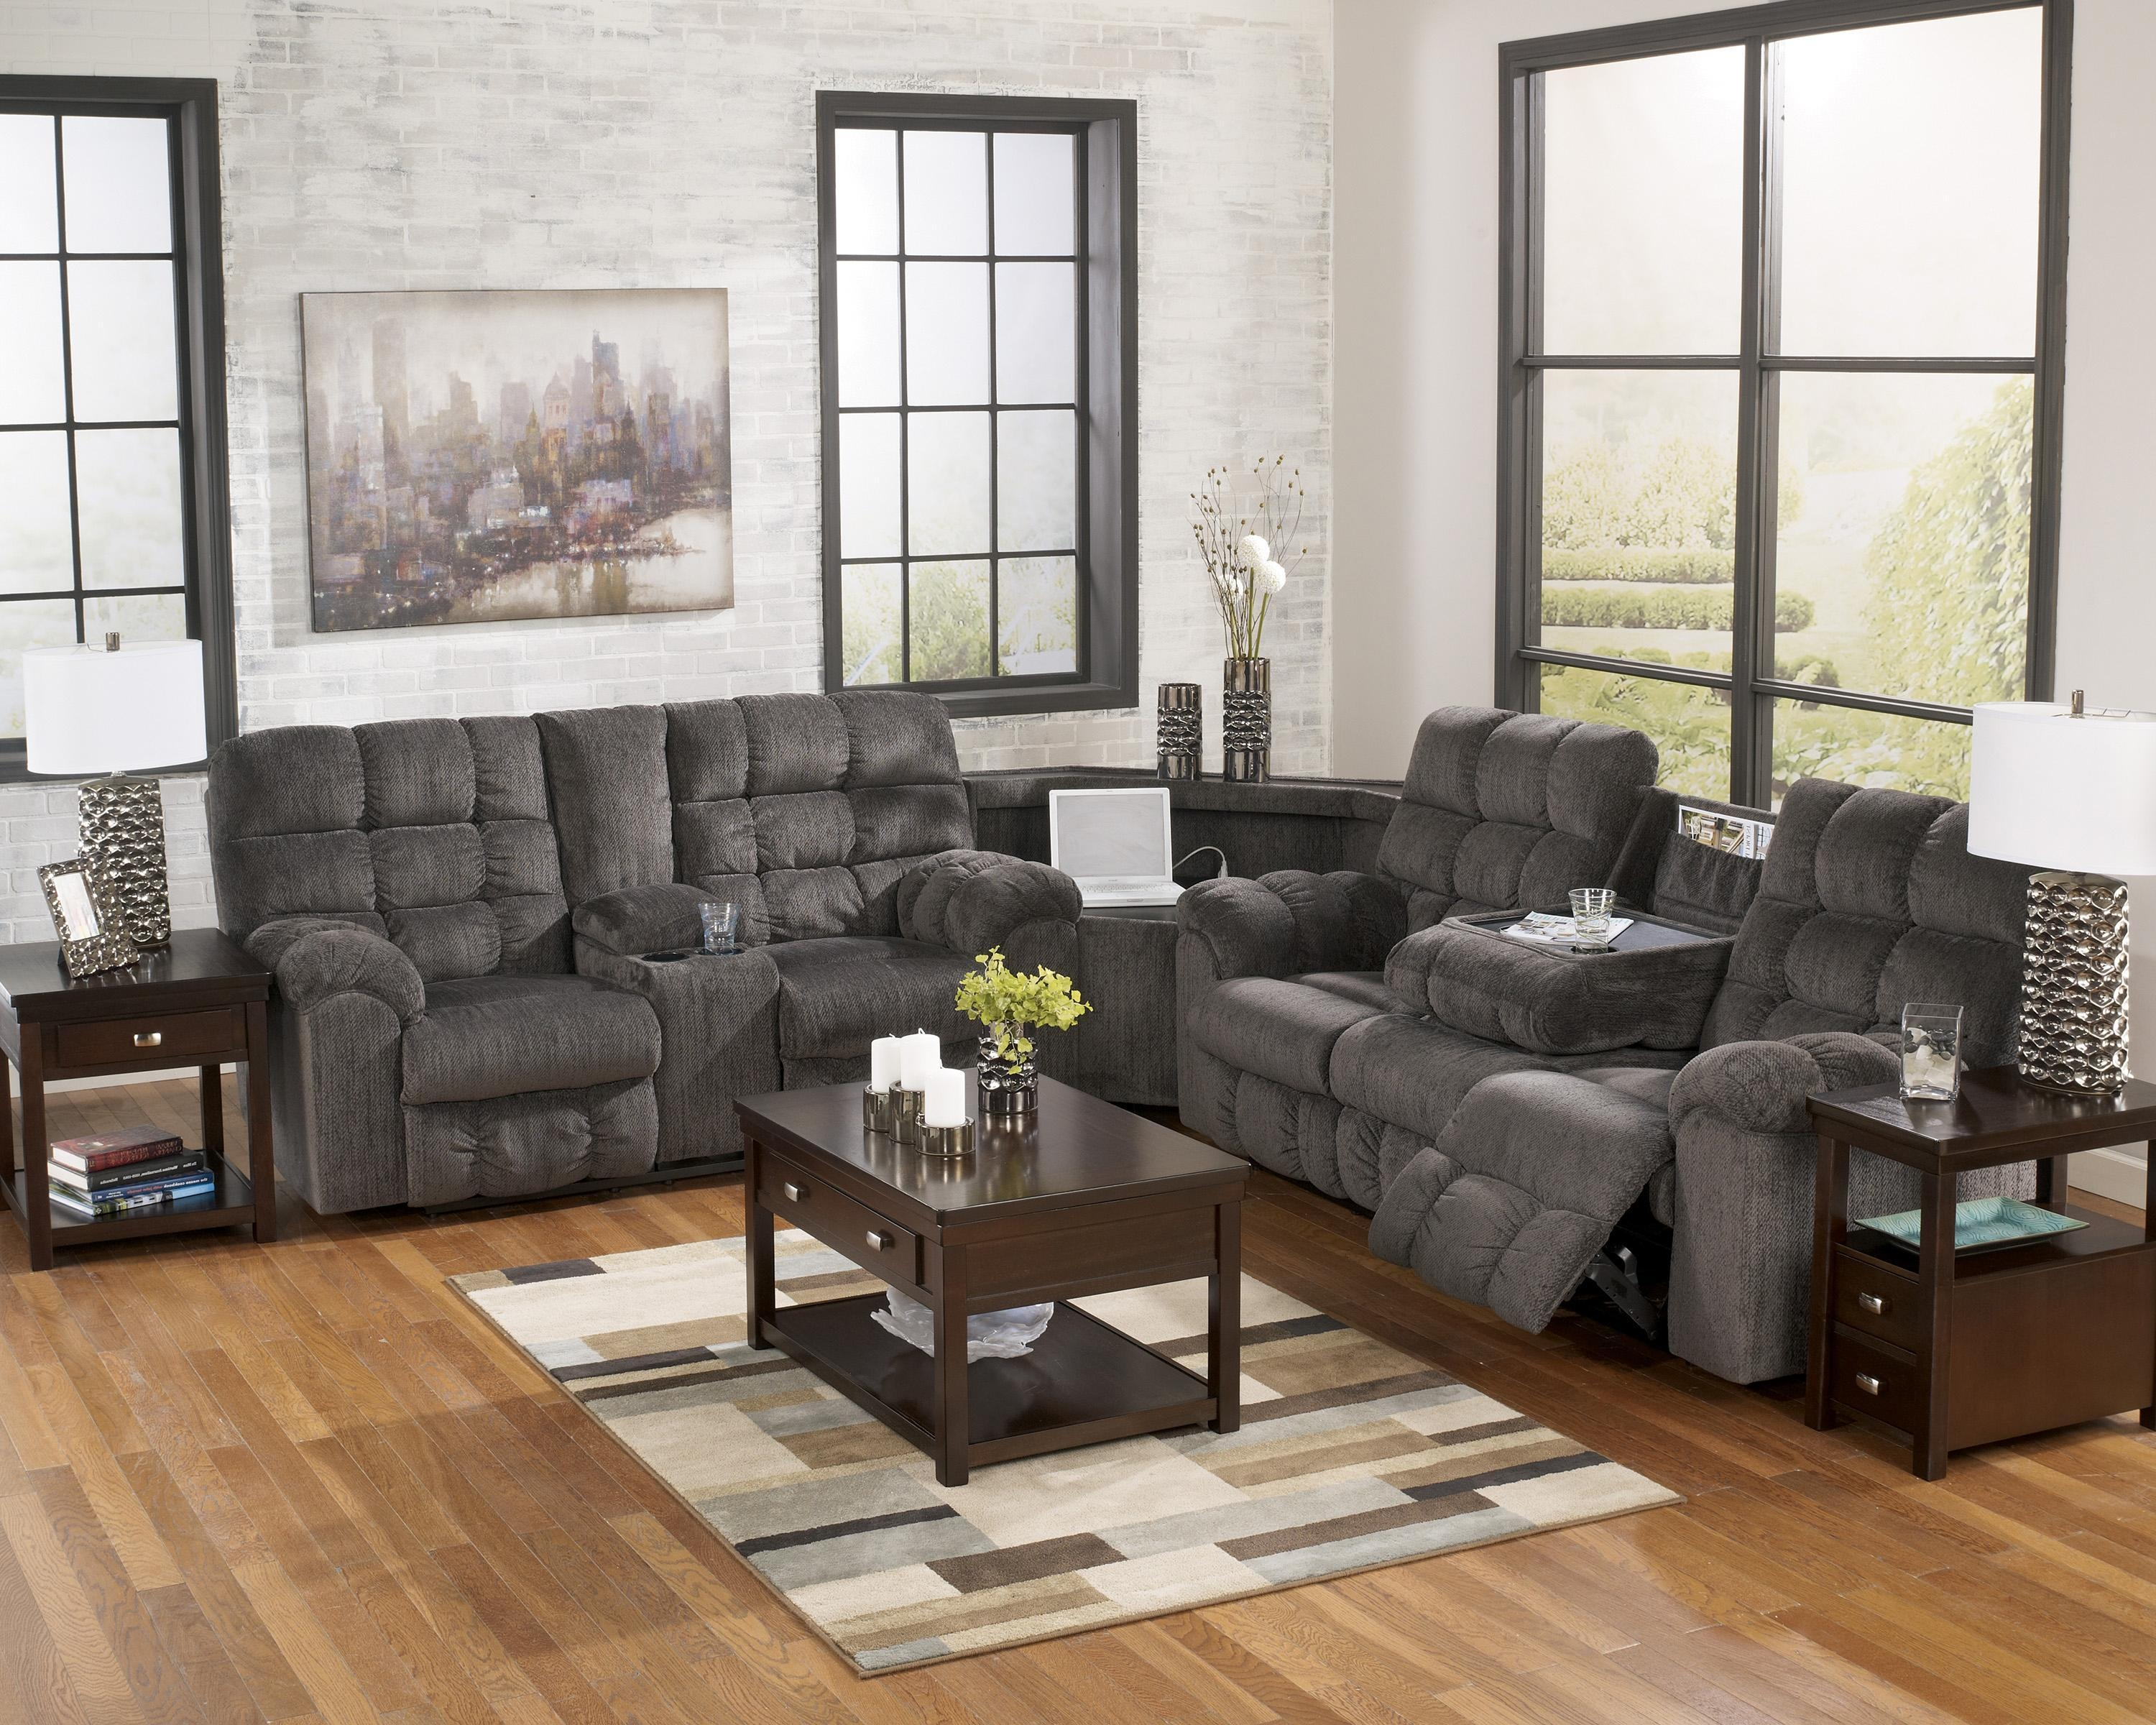 Reclining Sectional With Left Side Loveseat, Cup Holders And Pertaining To Sectional With Cup Holders (View 3 of 20)